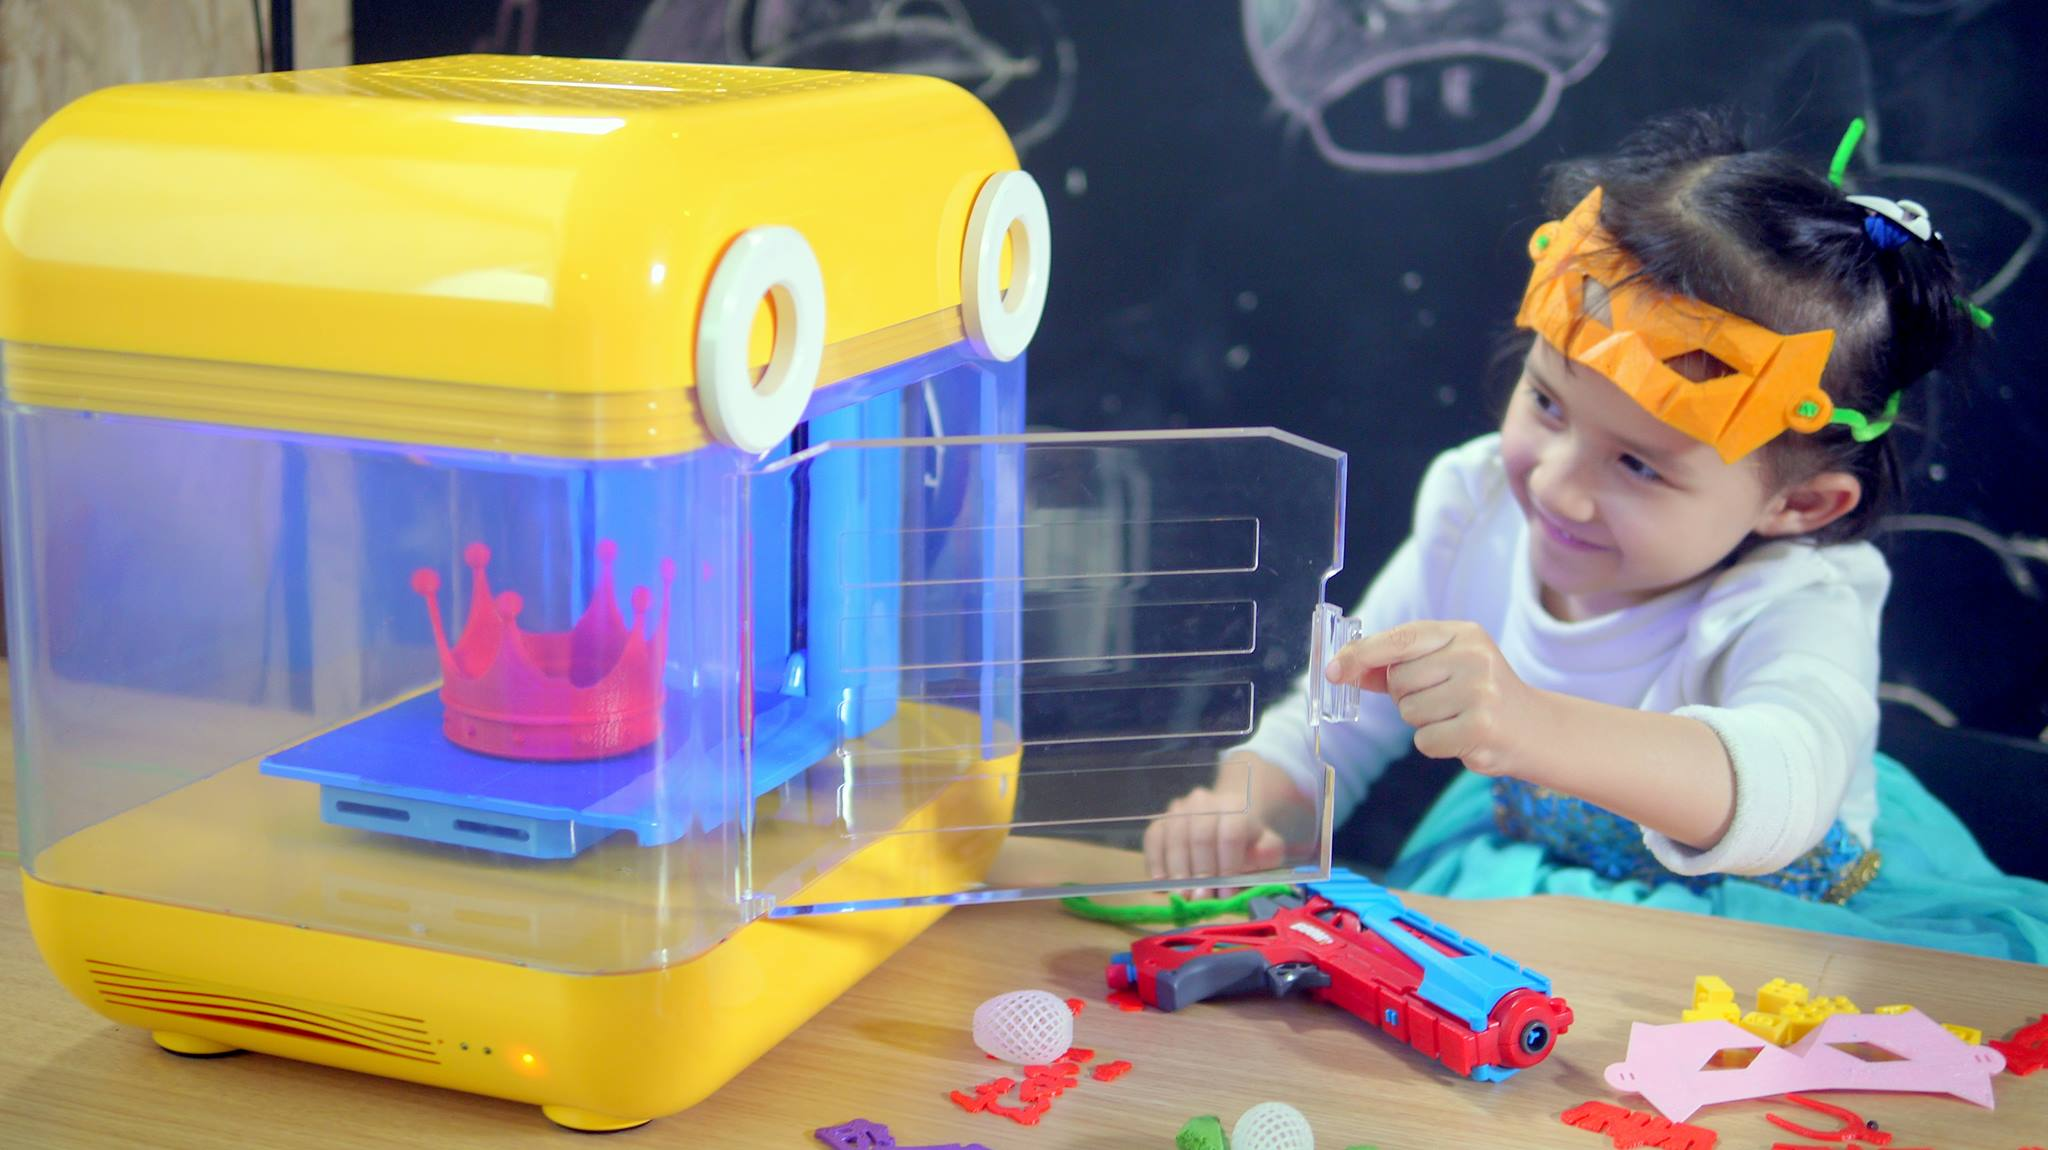 MiniToy 3D Printer is the Kid-friendly Making Machine For Toys and ...